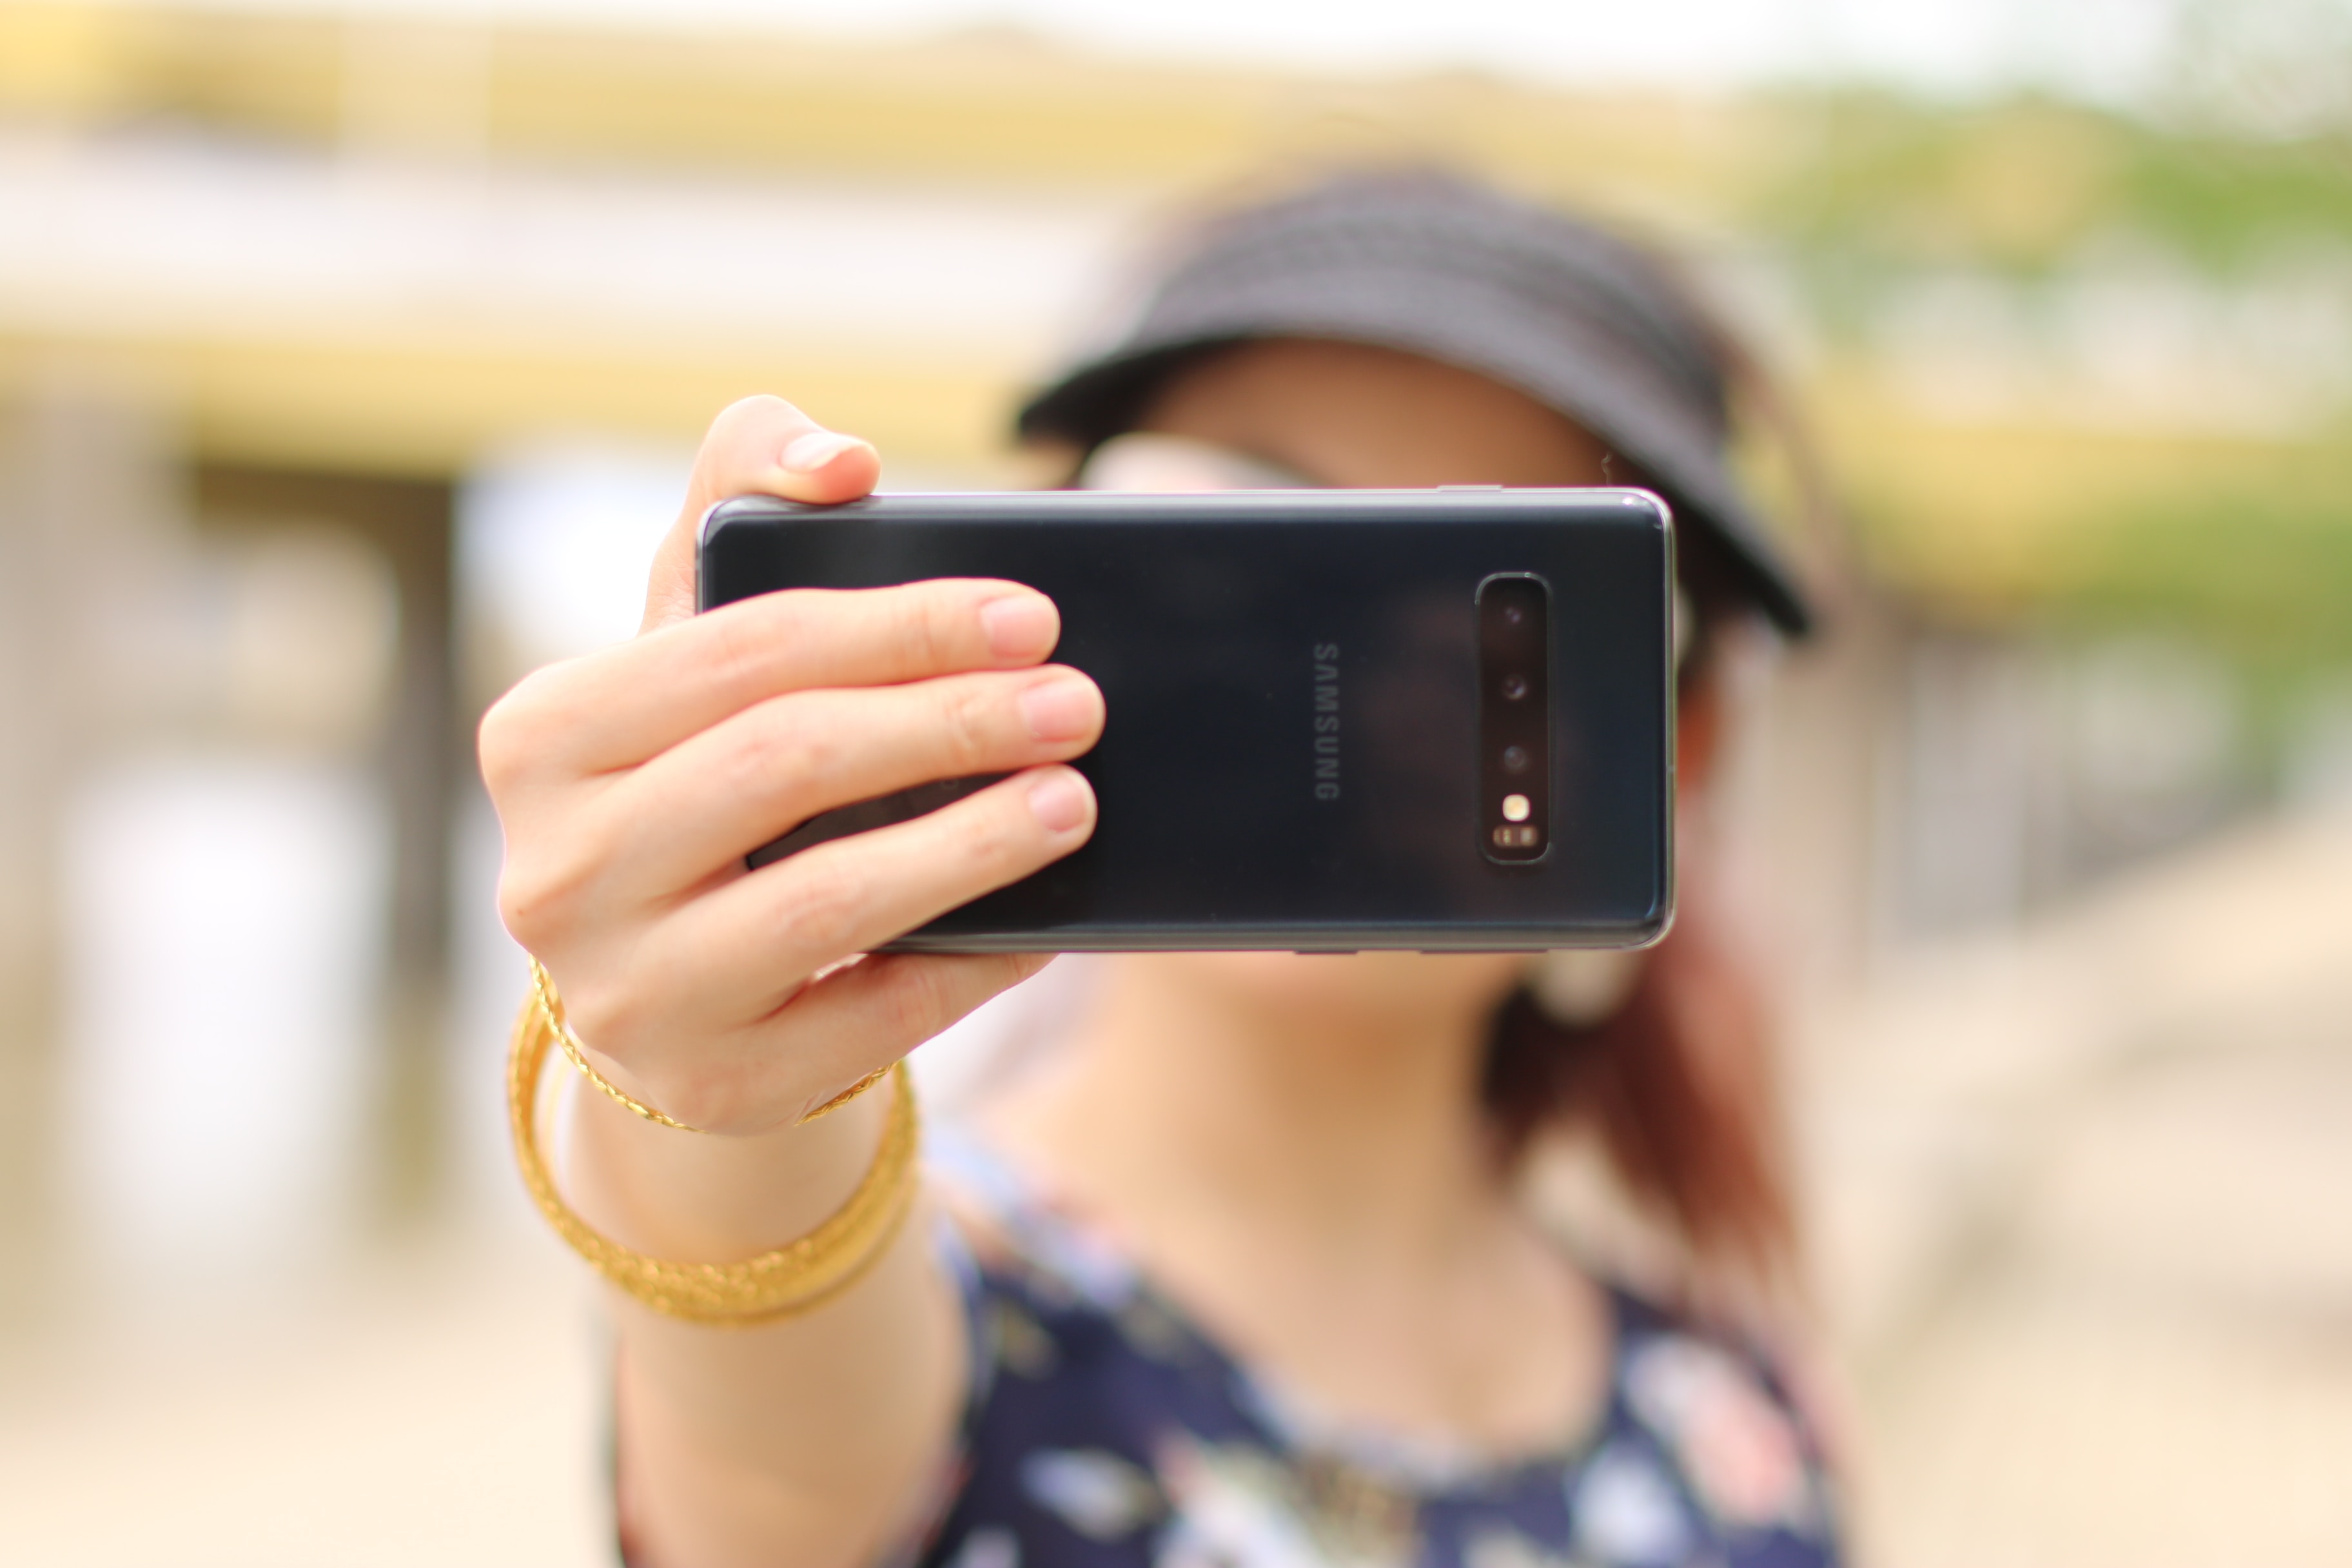 Why We Have a No-Selfie Policy   Psychology Today